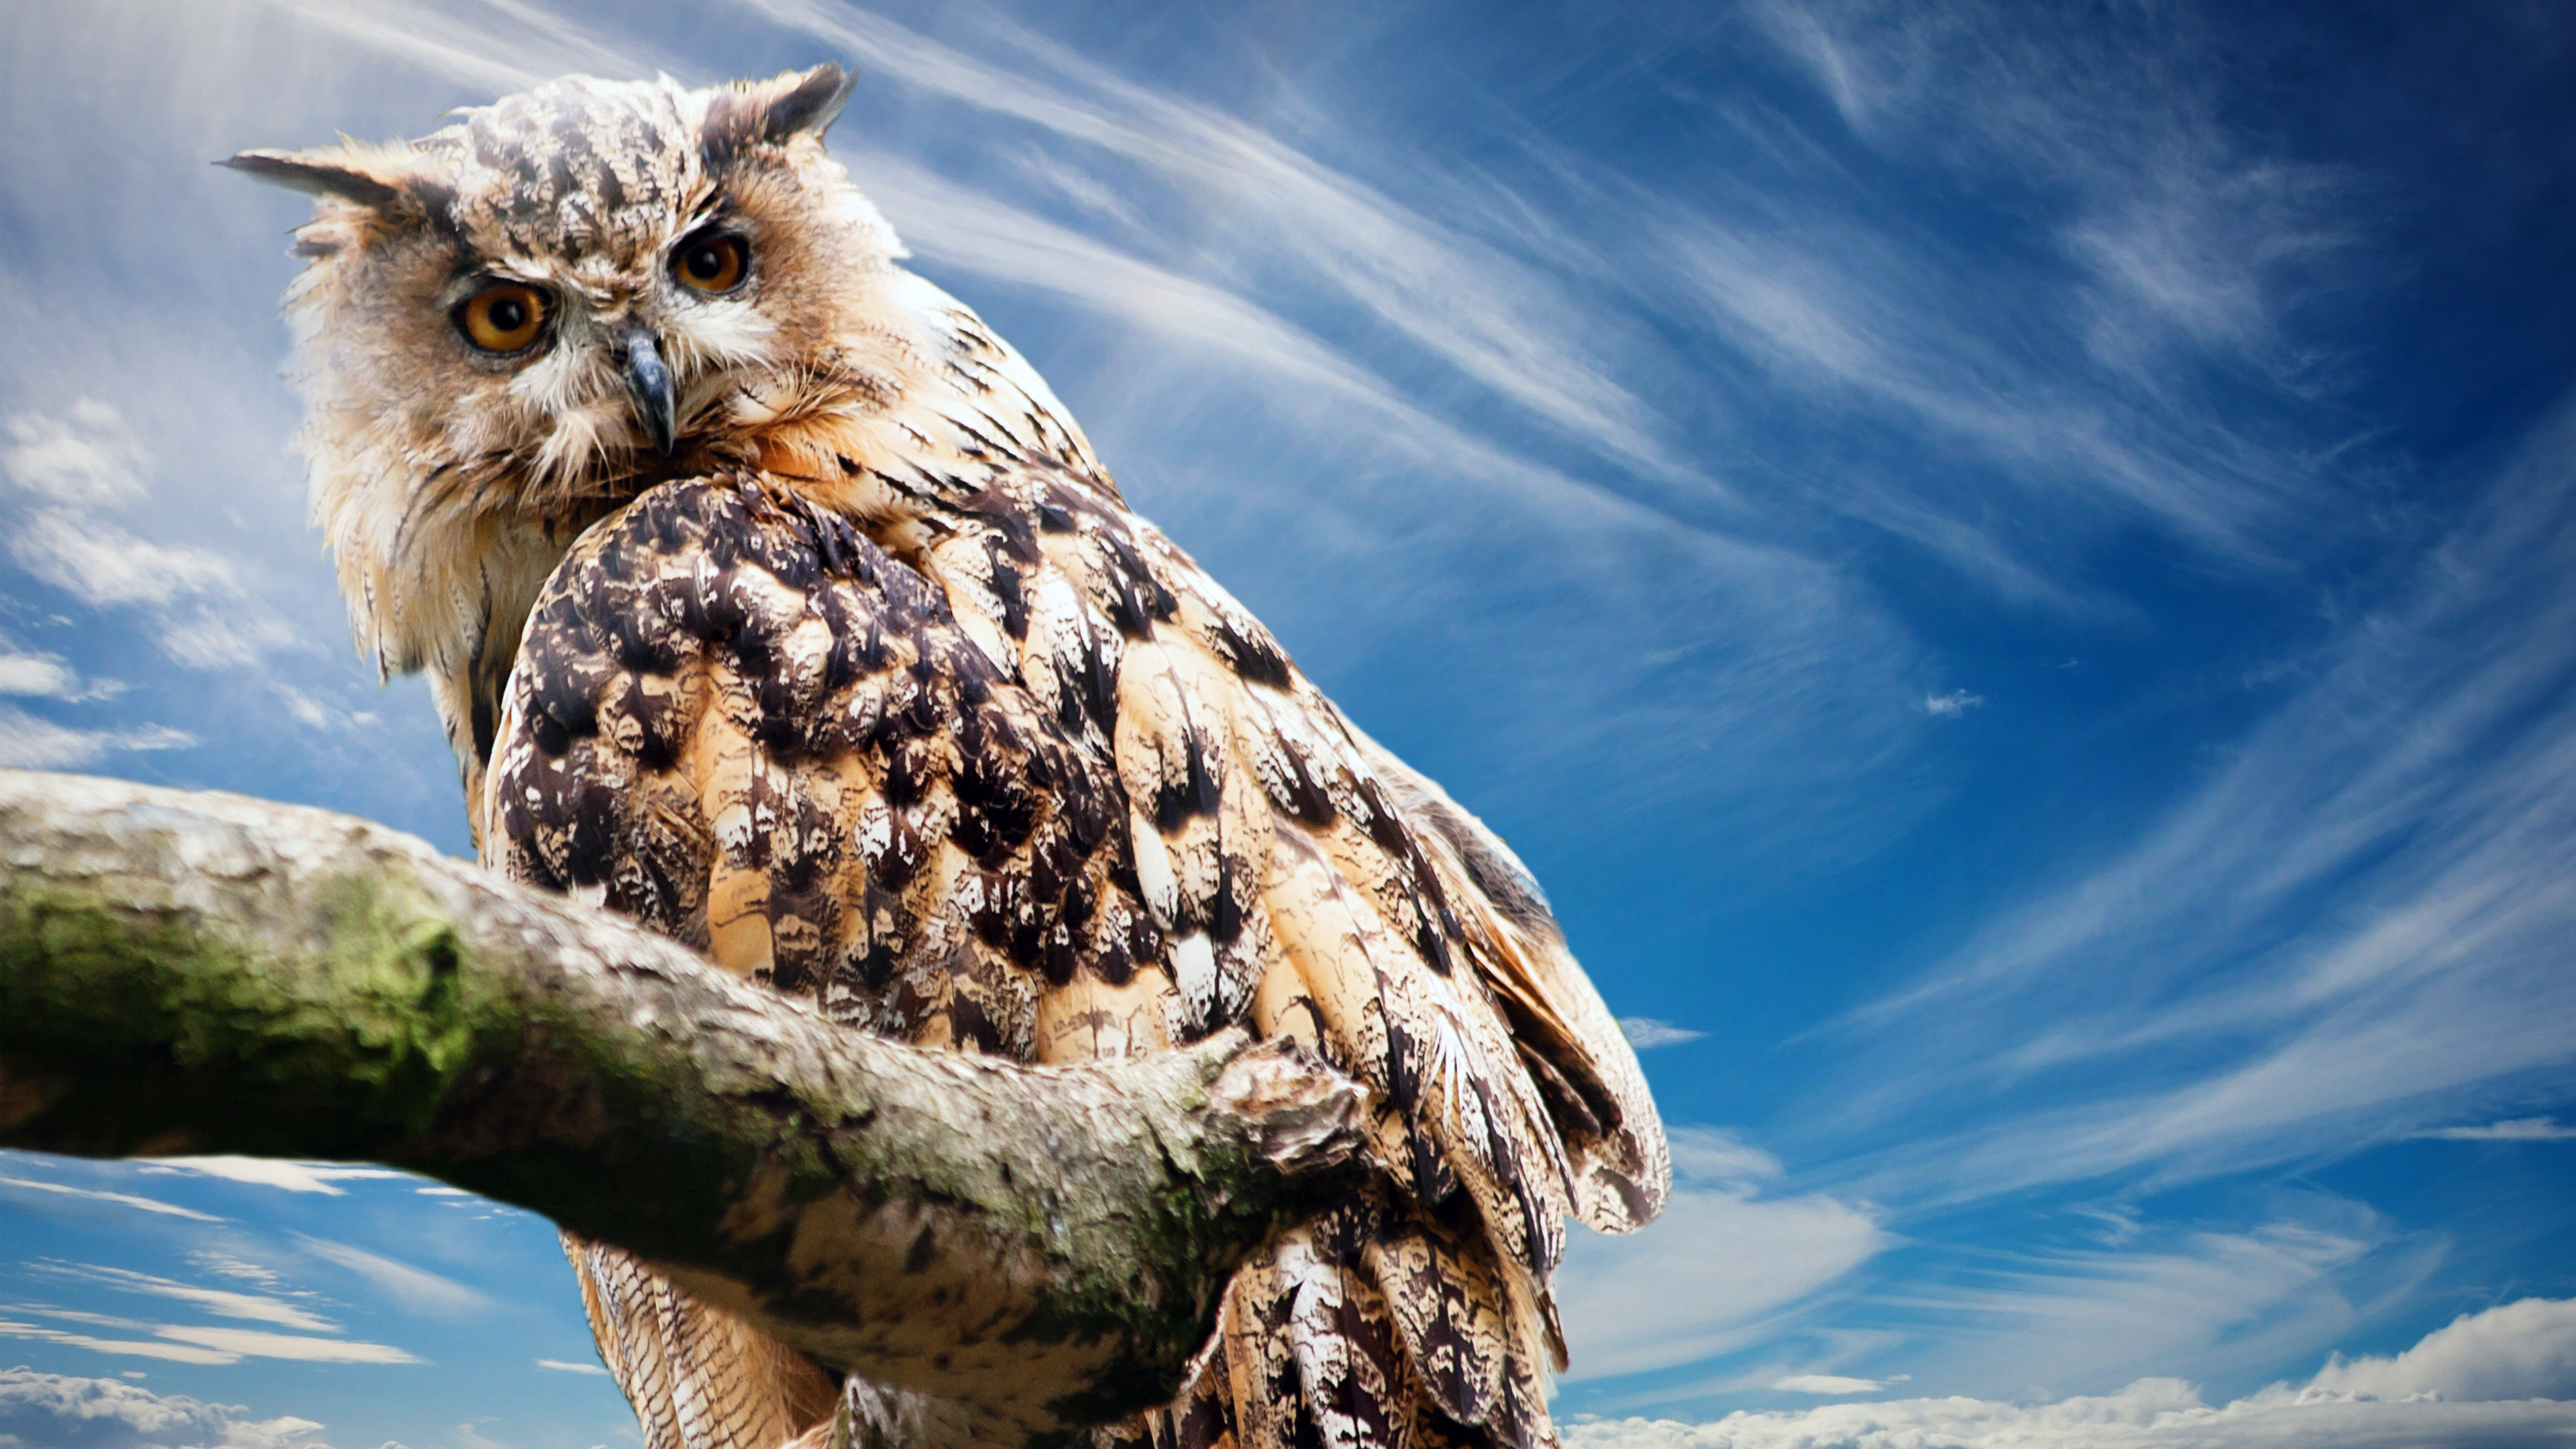 Download hd 4k Great Horned Owl computer wallpaper ID:297760 for free